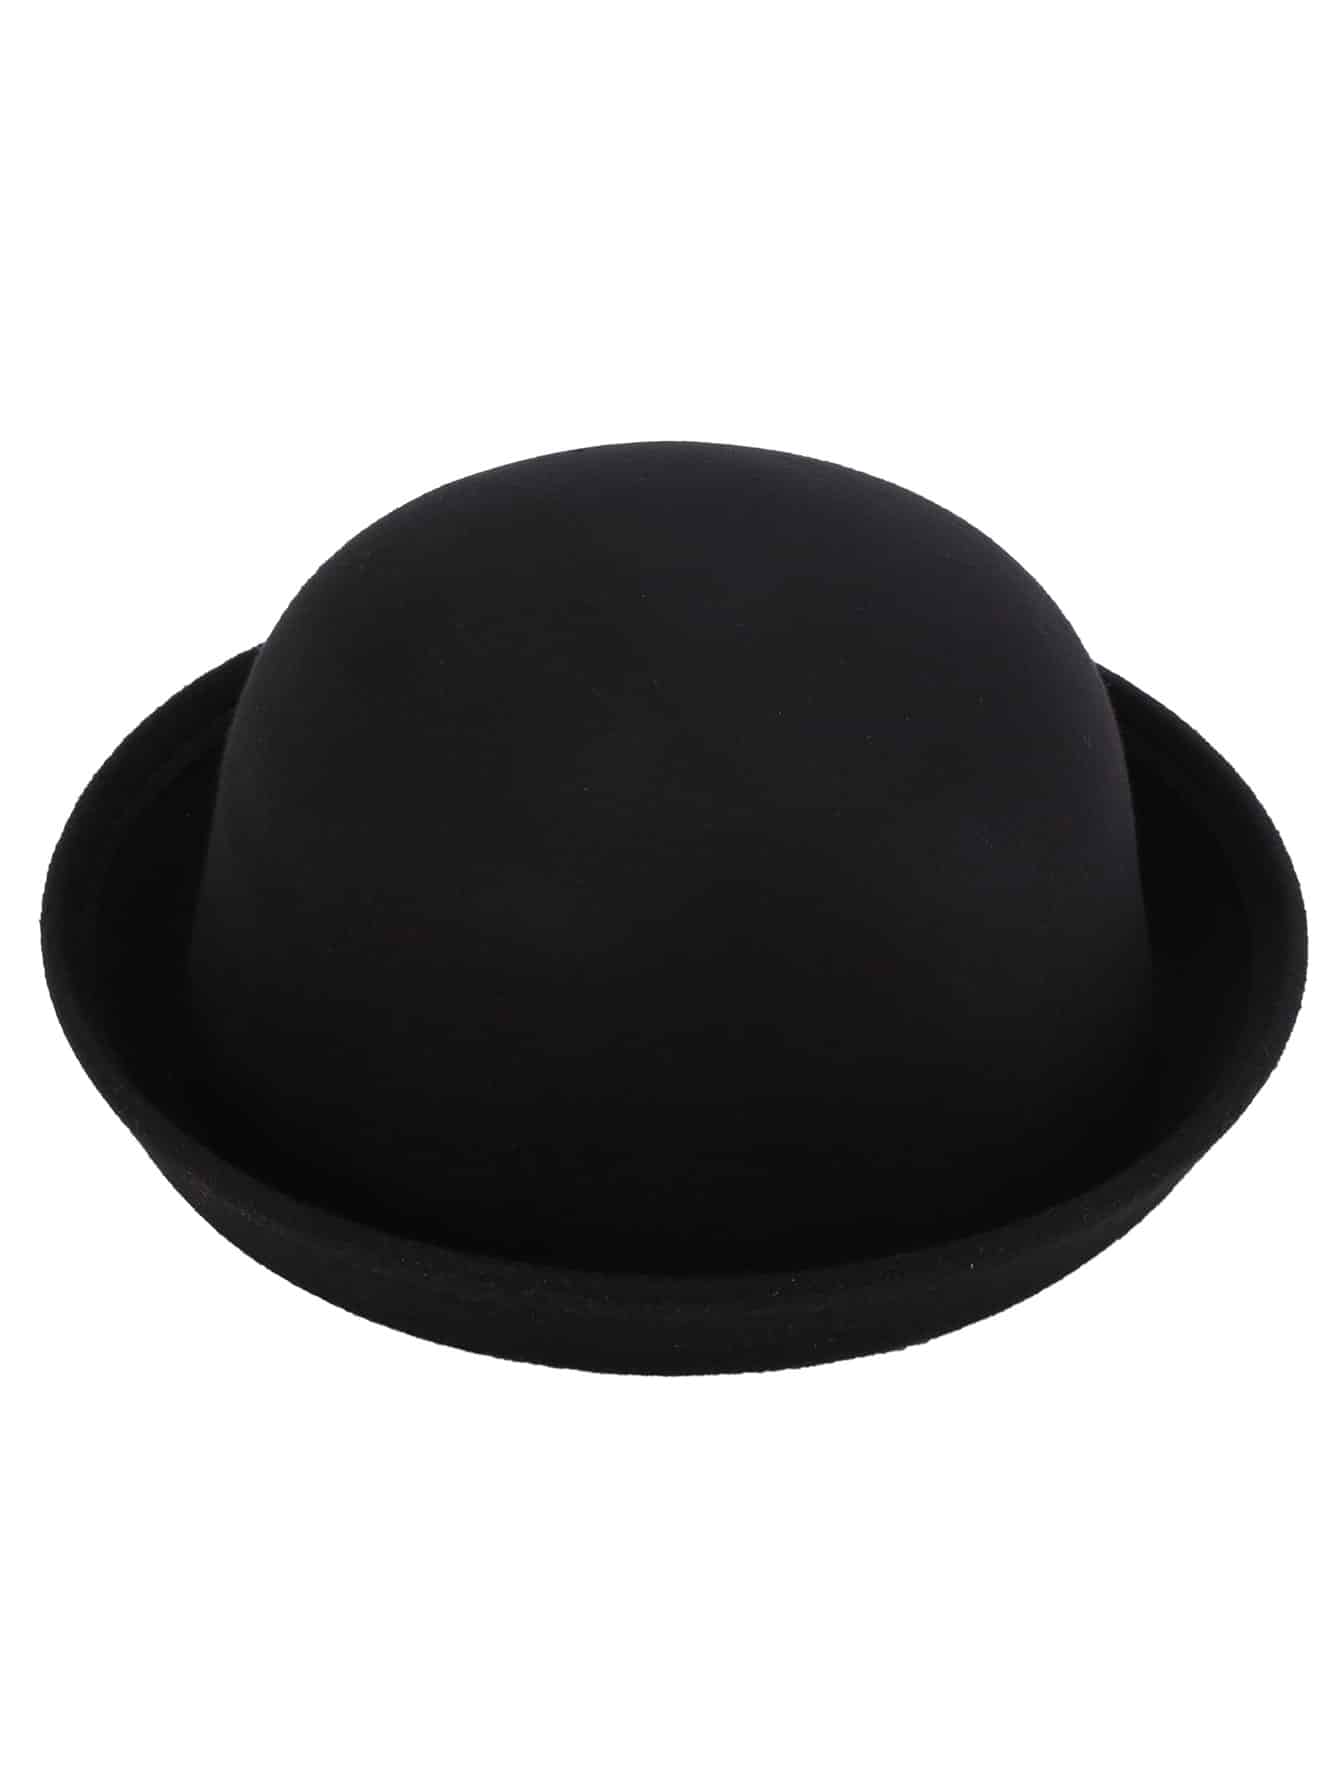 black vintage felt bowler hat shein sheinside. Black Bedroom Furniture Sets. Home Design Ideas